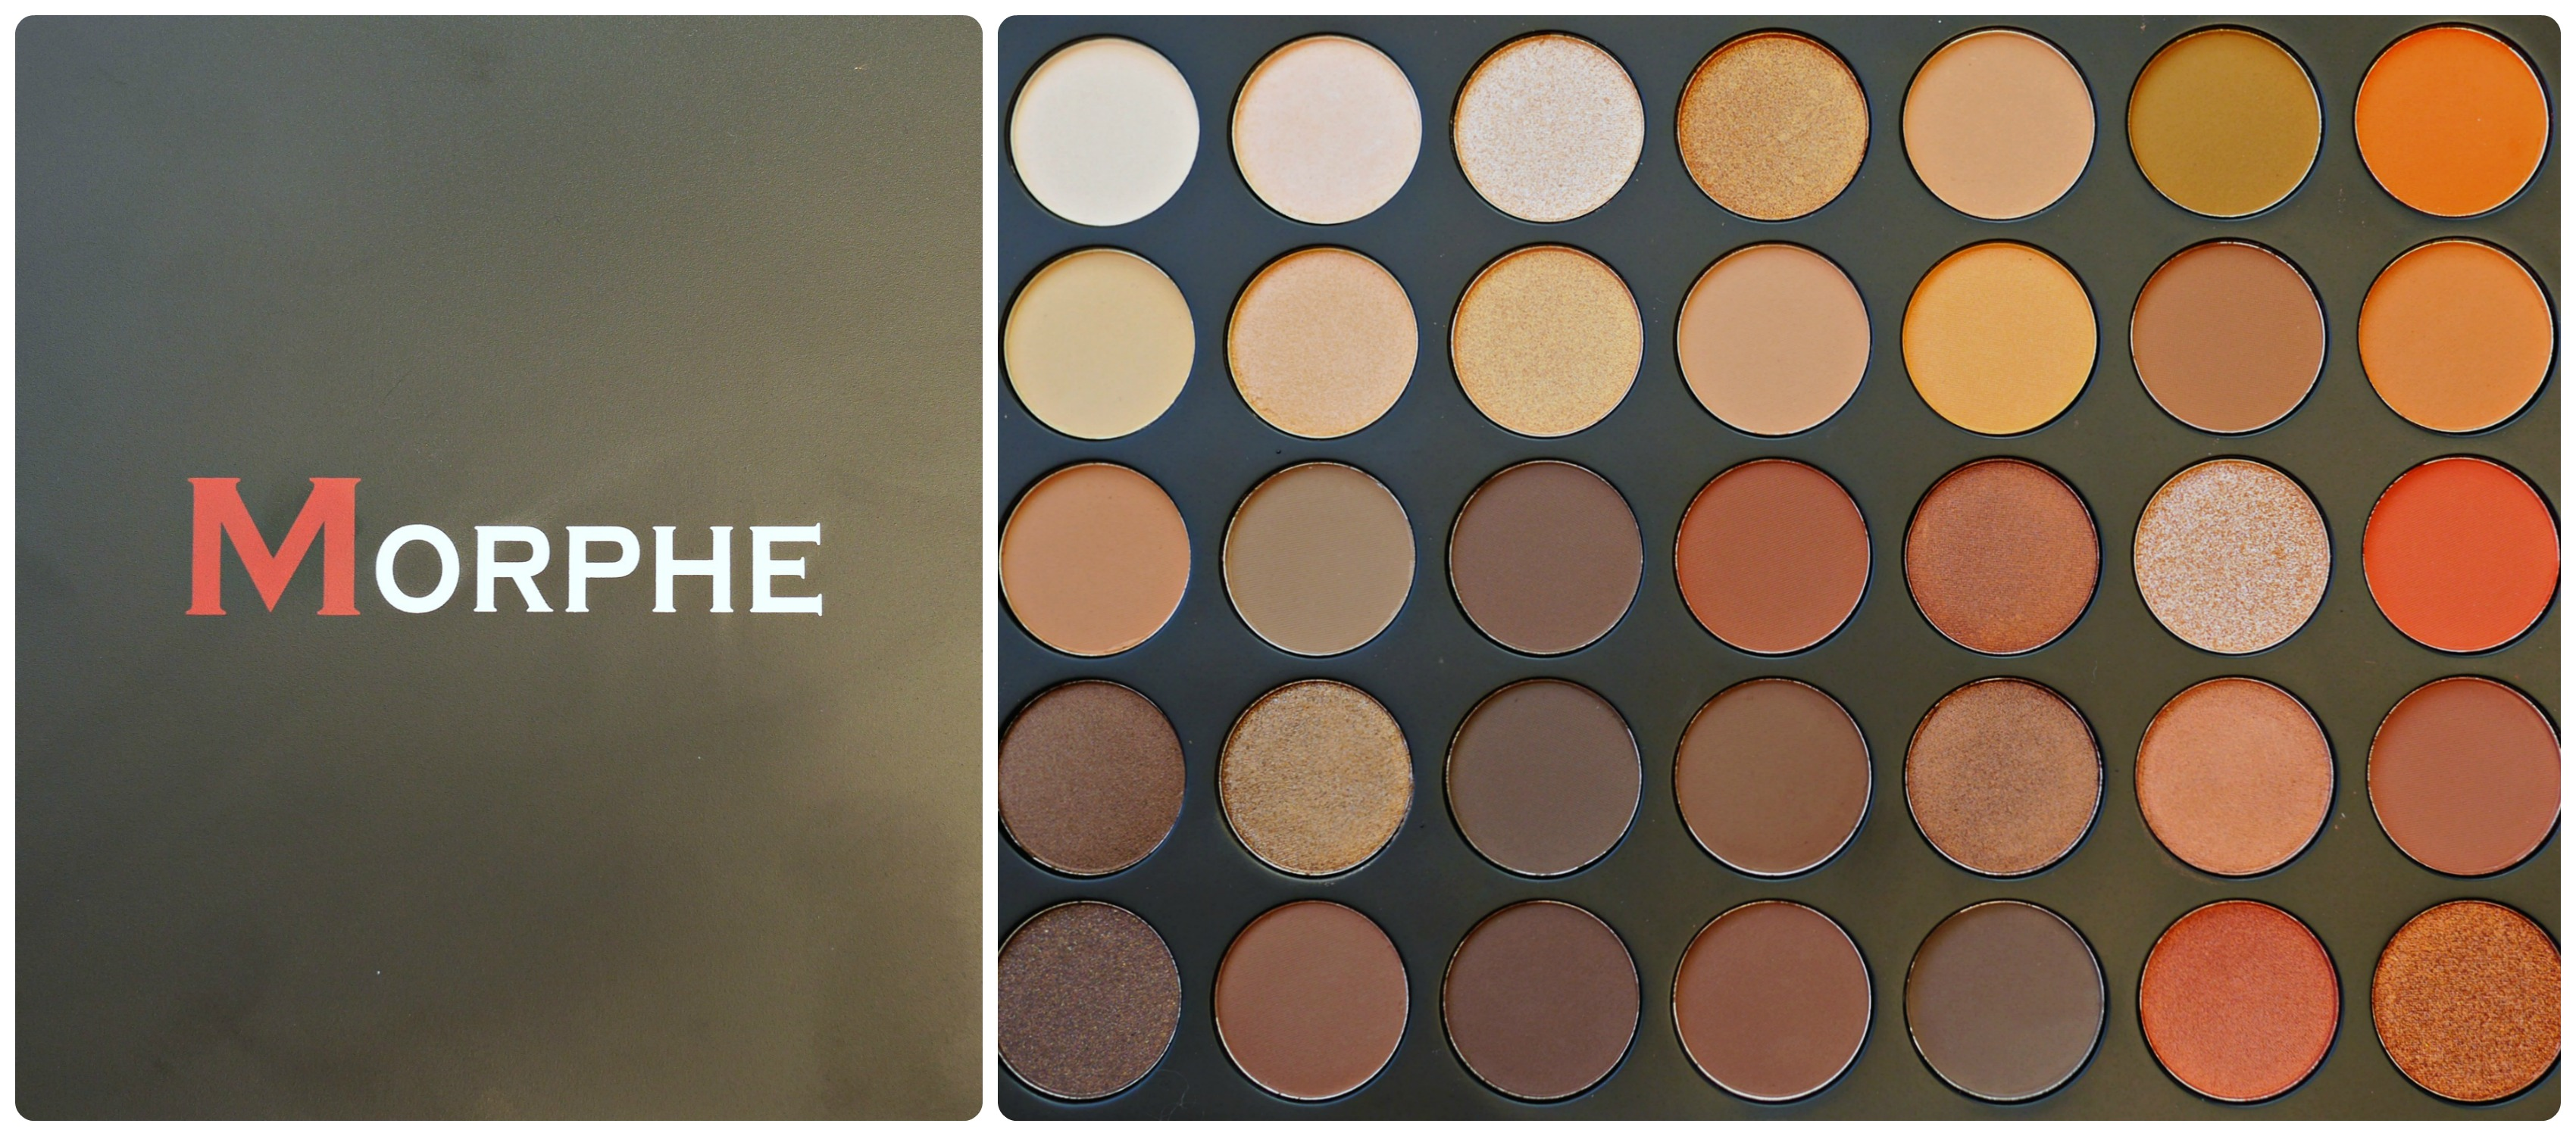 Morphe 35O Pallette- Review